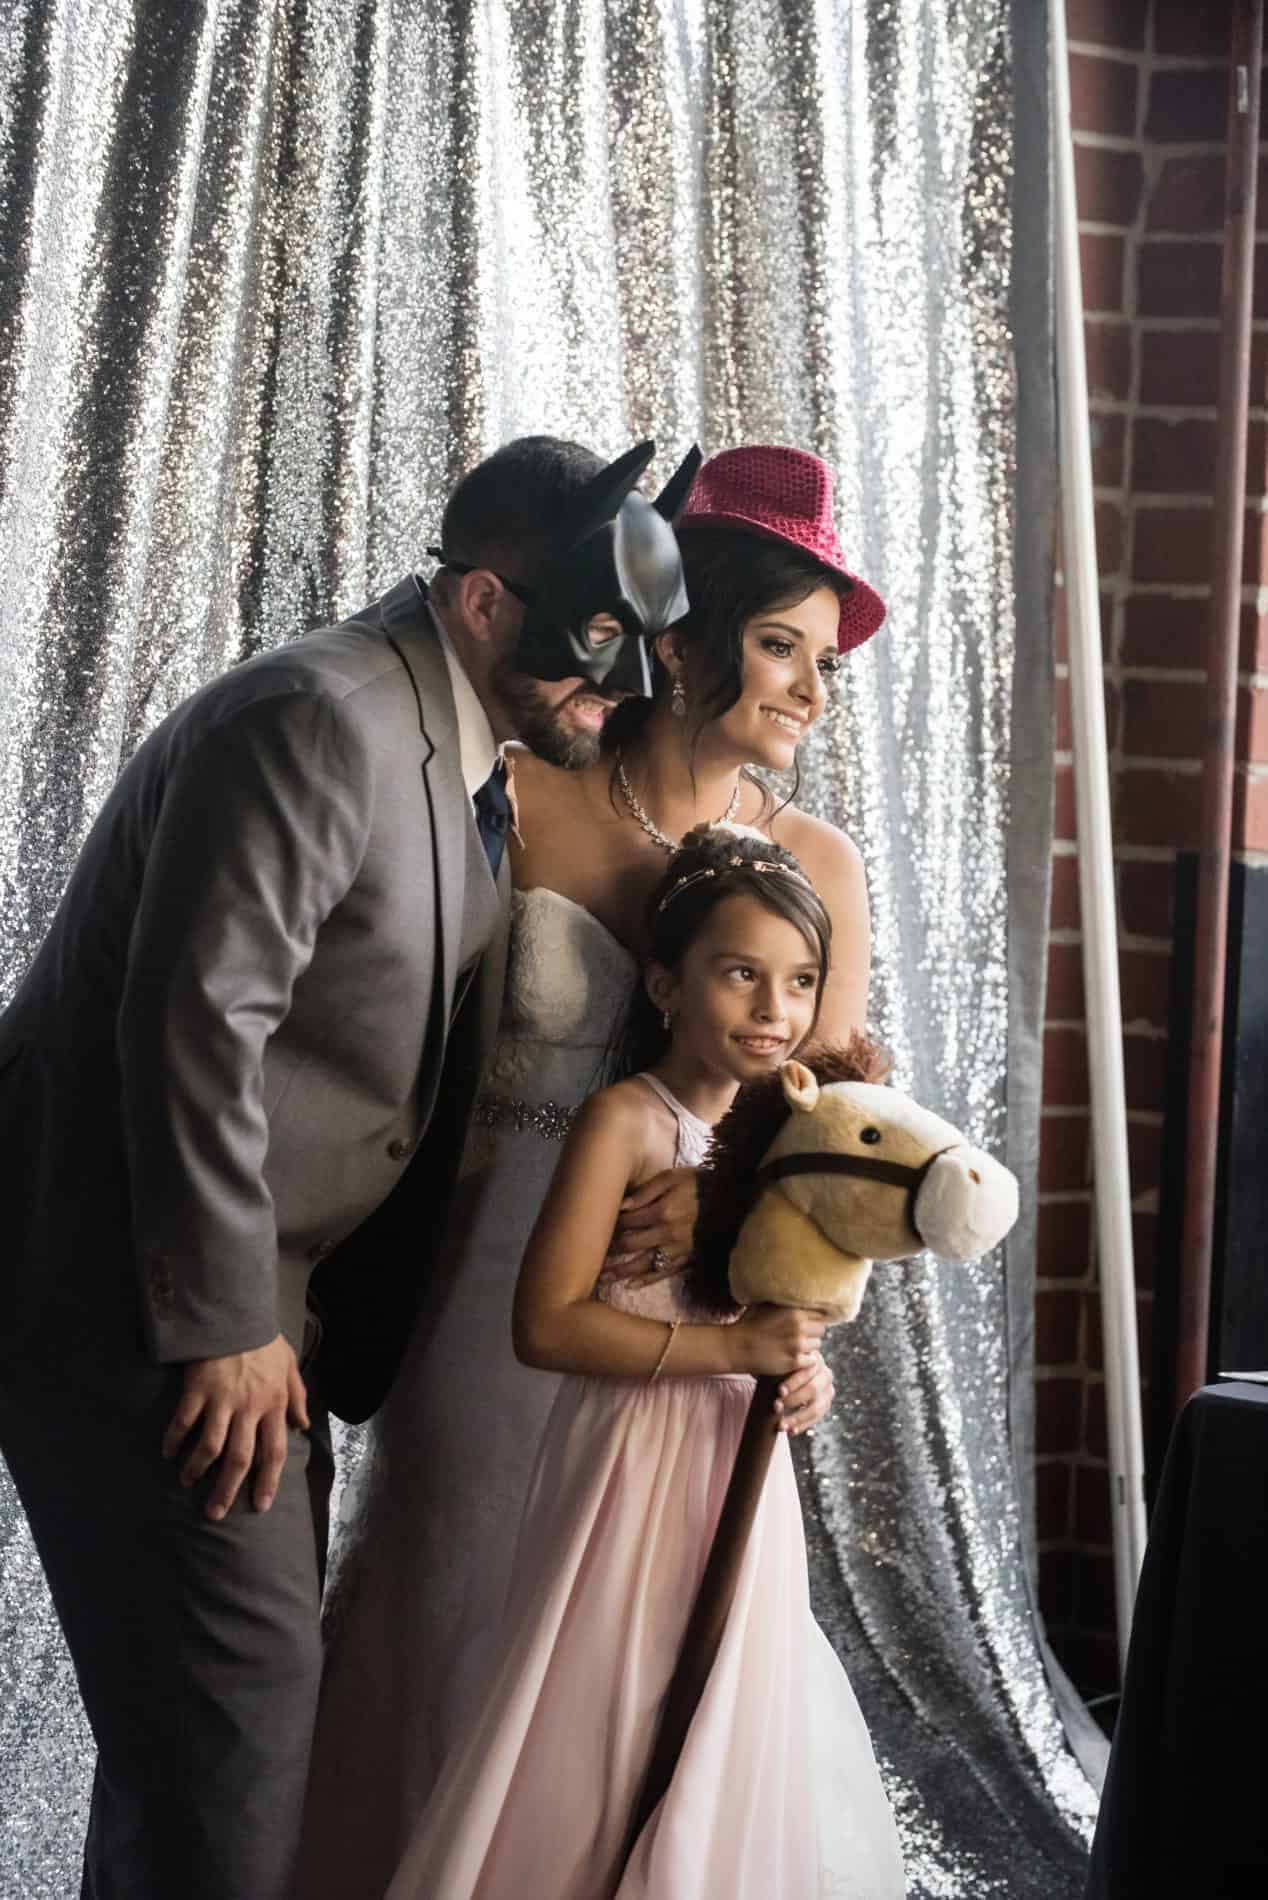 New Family enjoying the photo booth